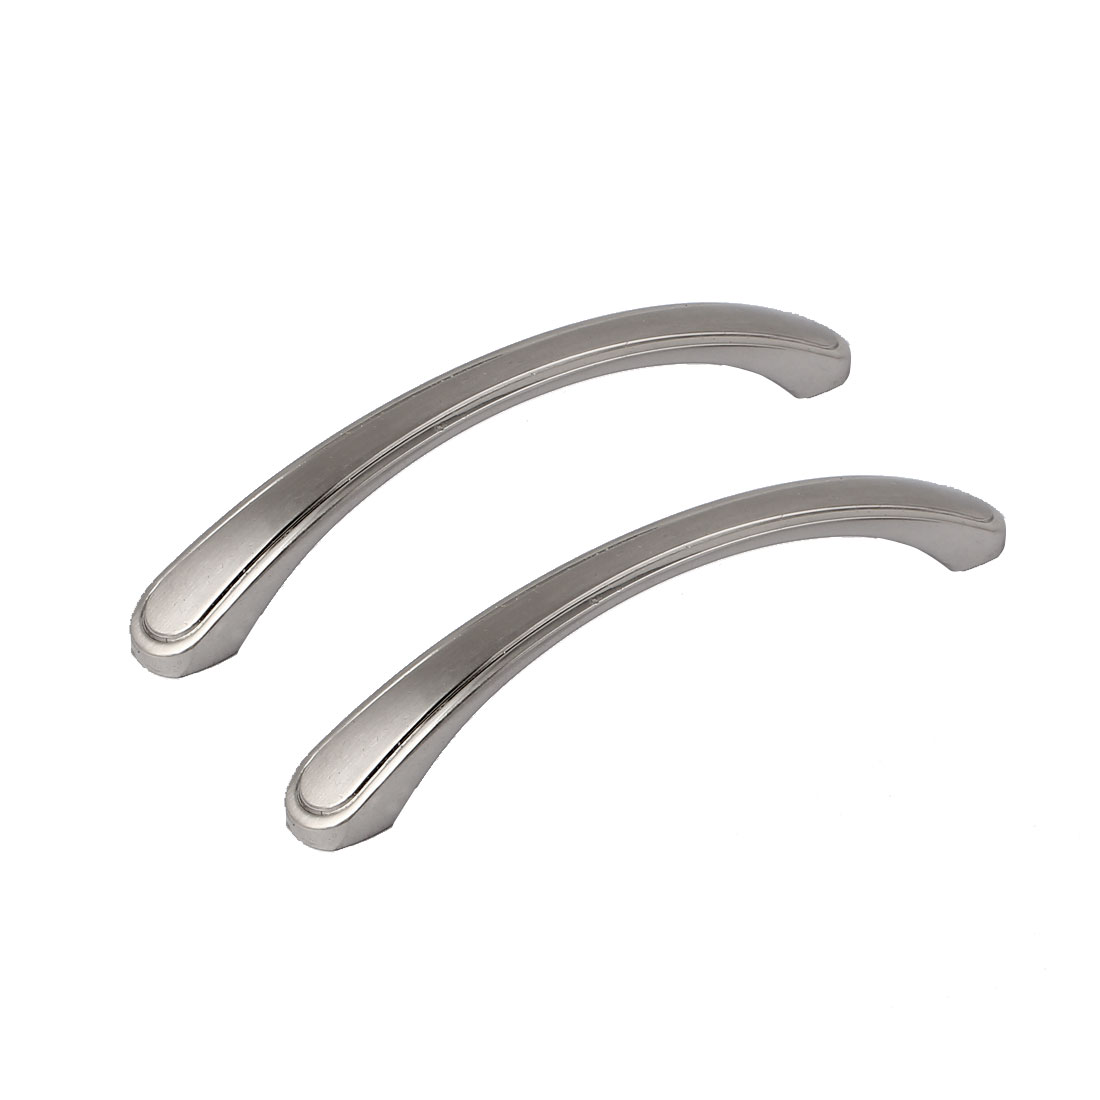 96mm Spacing Cabinets Kitchen Door Pull Handle Hardware 2pcs